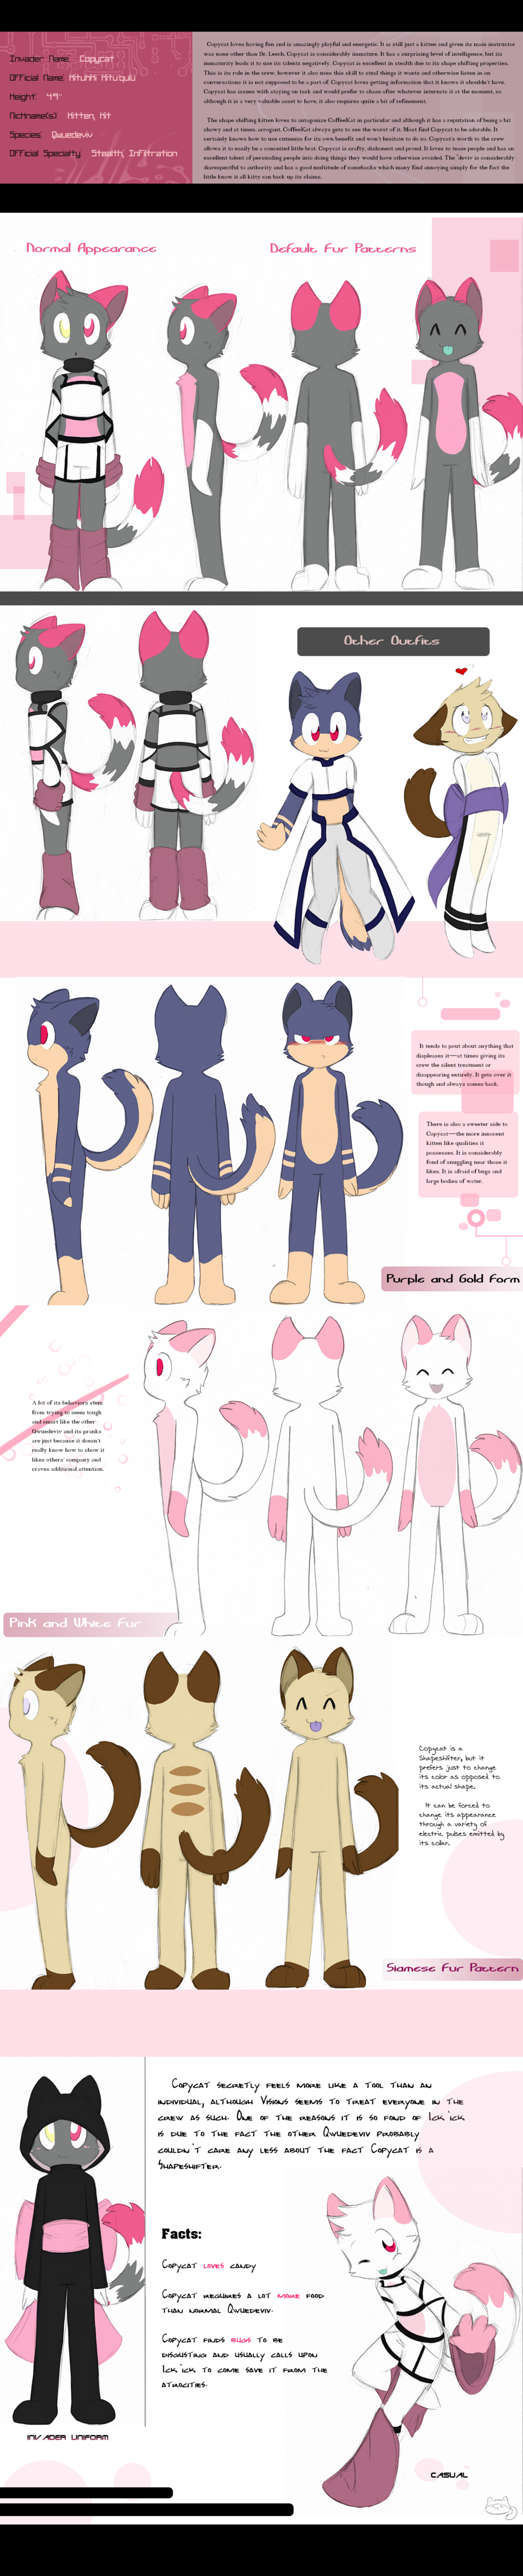 Copycat Full Ref (Outdated) by SmilehKitteh